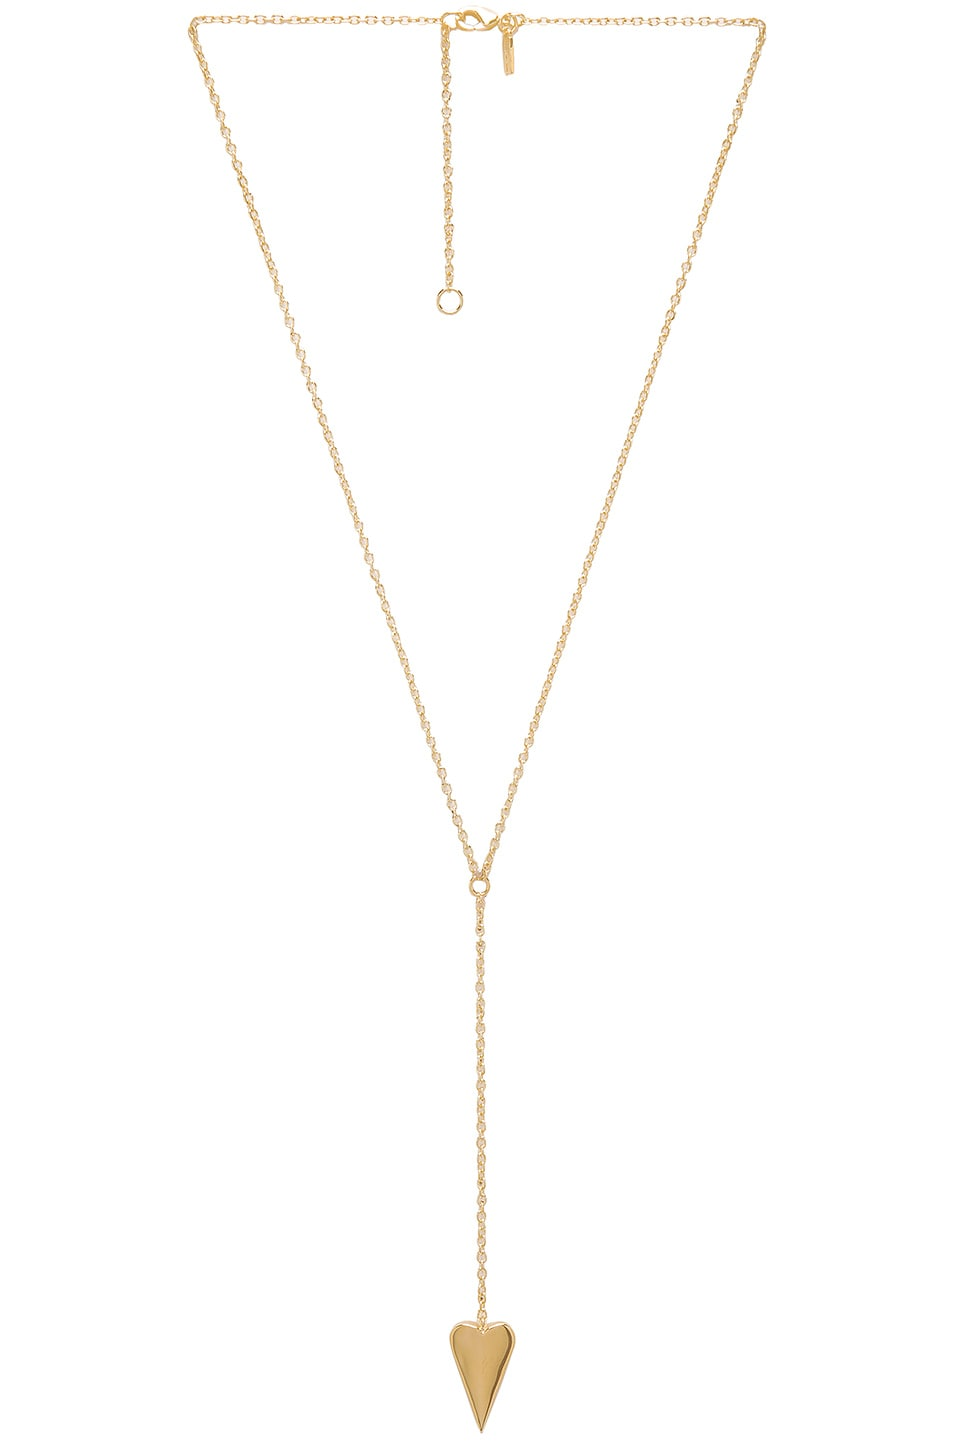 Elizabeth and James Bronte Necklace in Gold